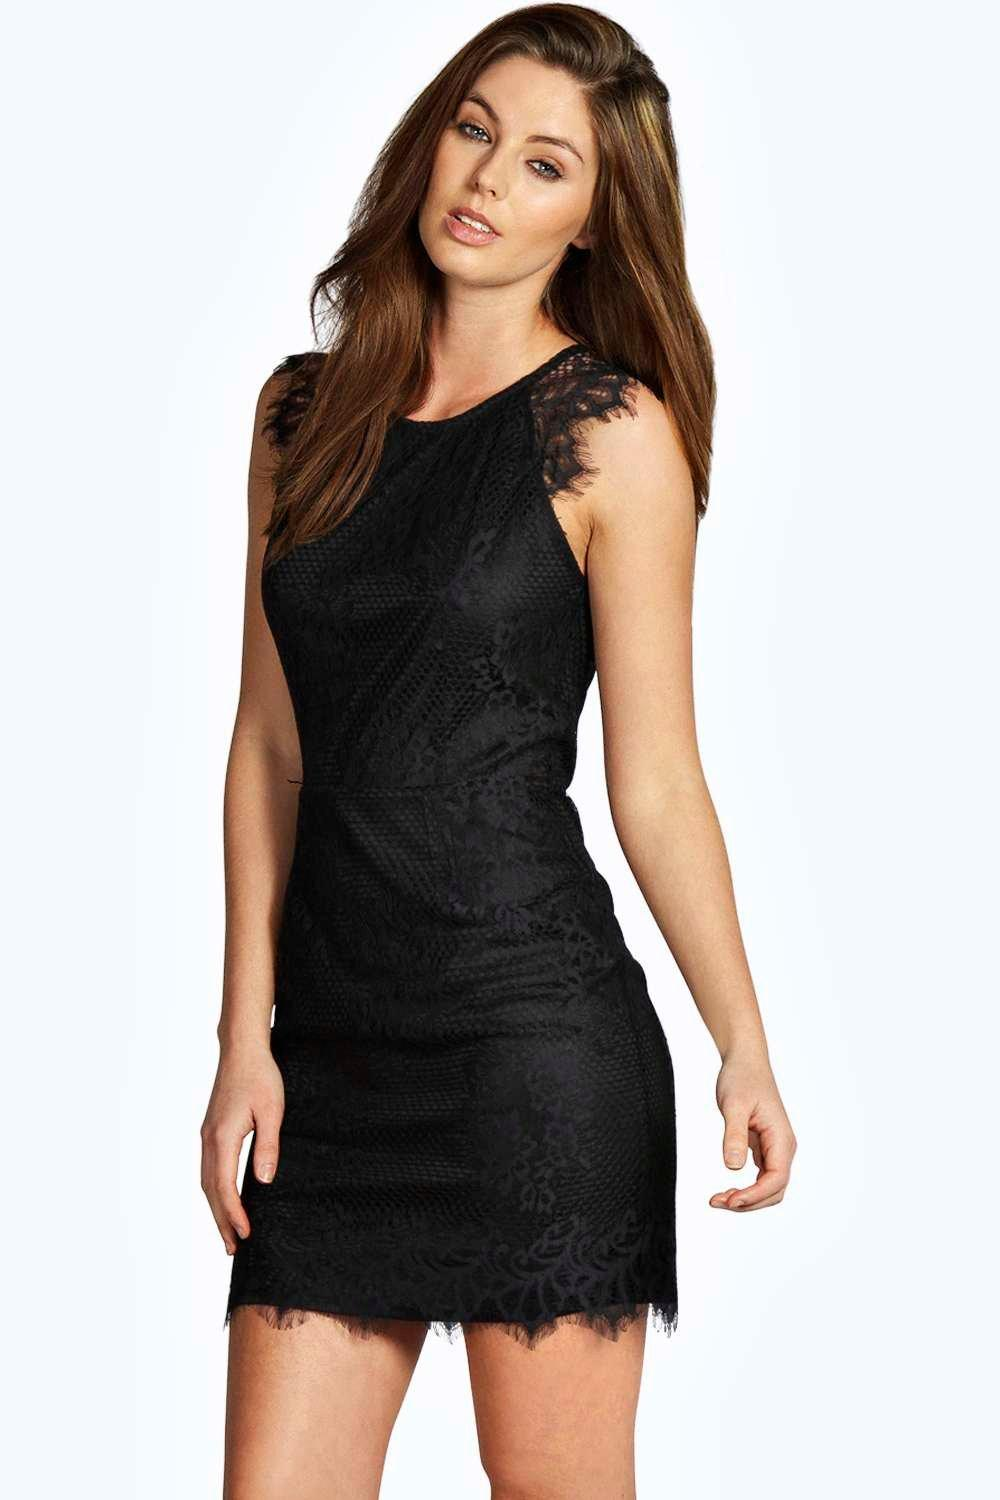 Jen All Over Eyelash Lace Bodycon Dress at boohoo.com